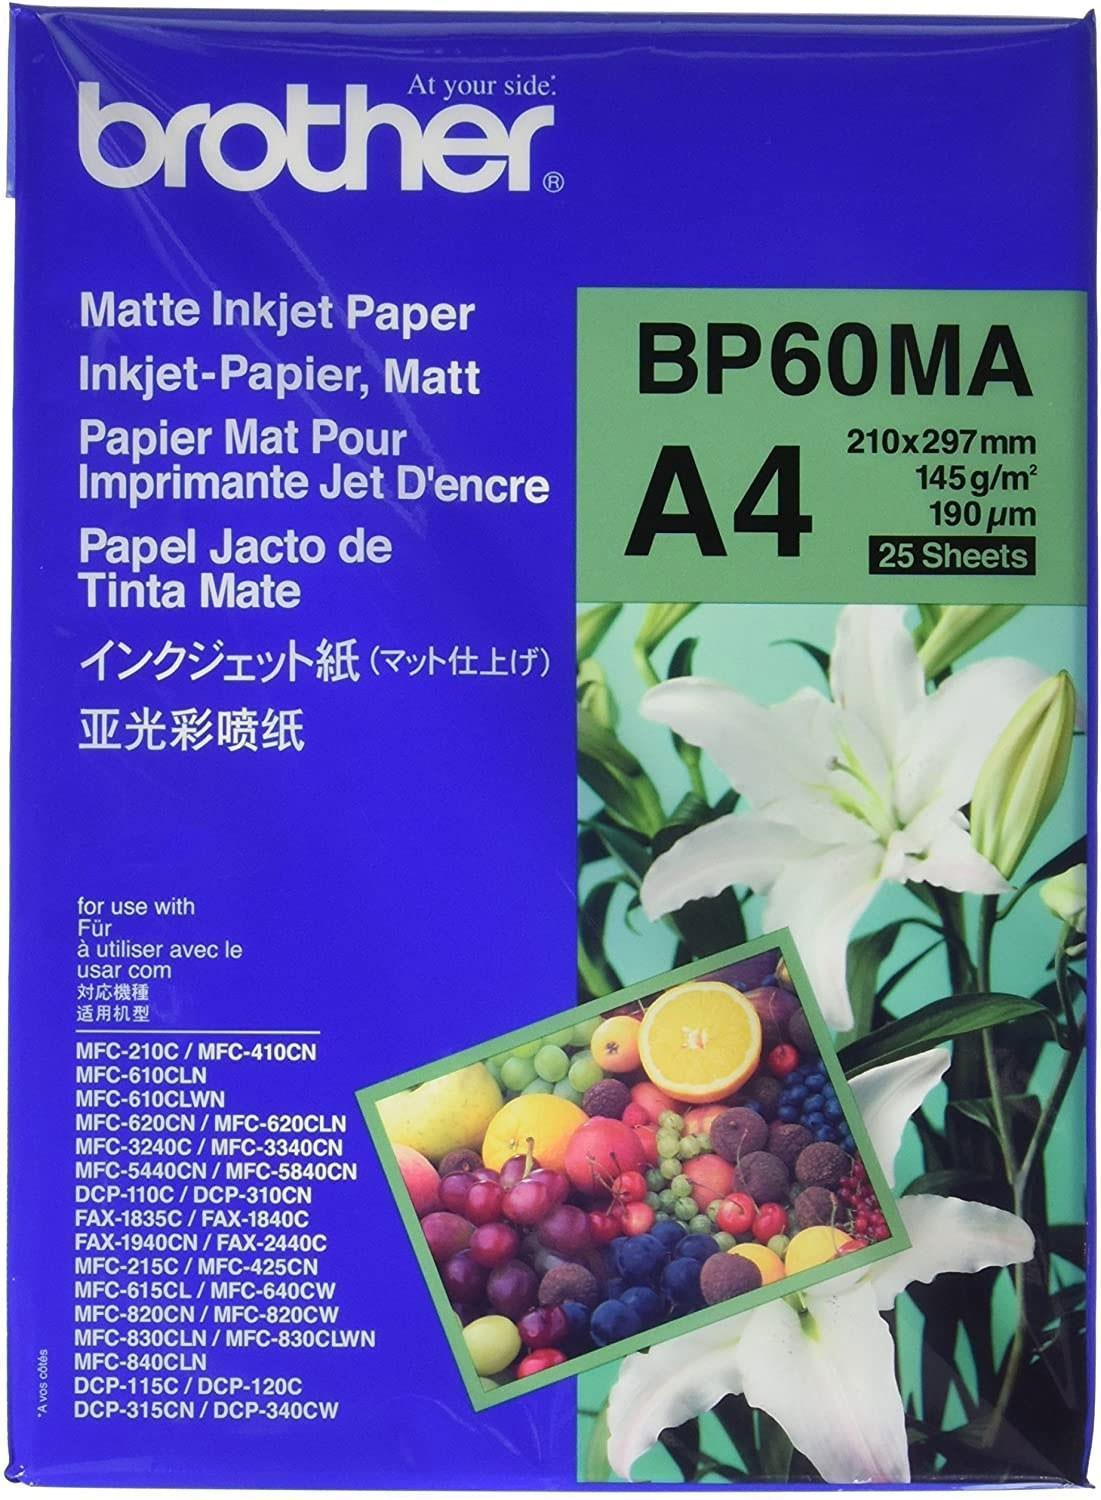 Brother BP60MA Inkjet Paper